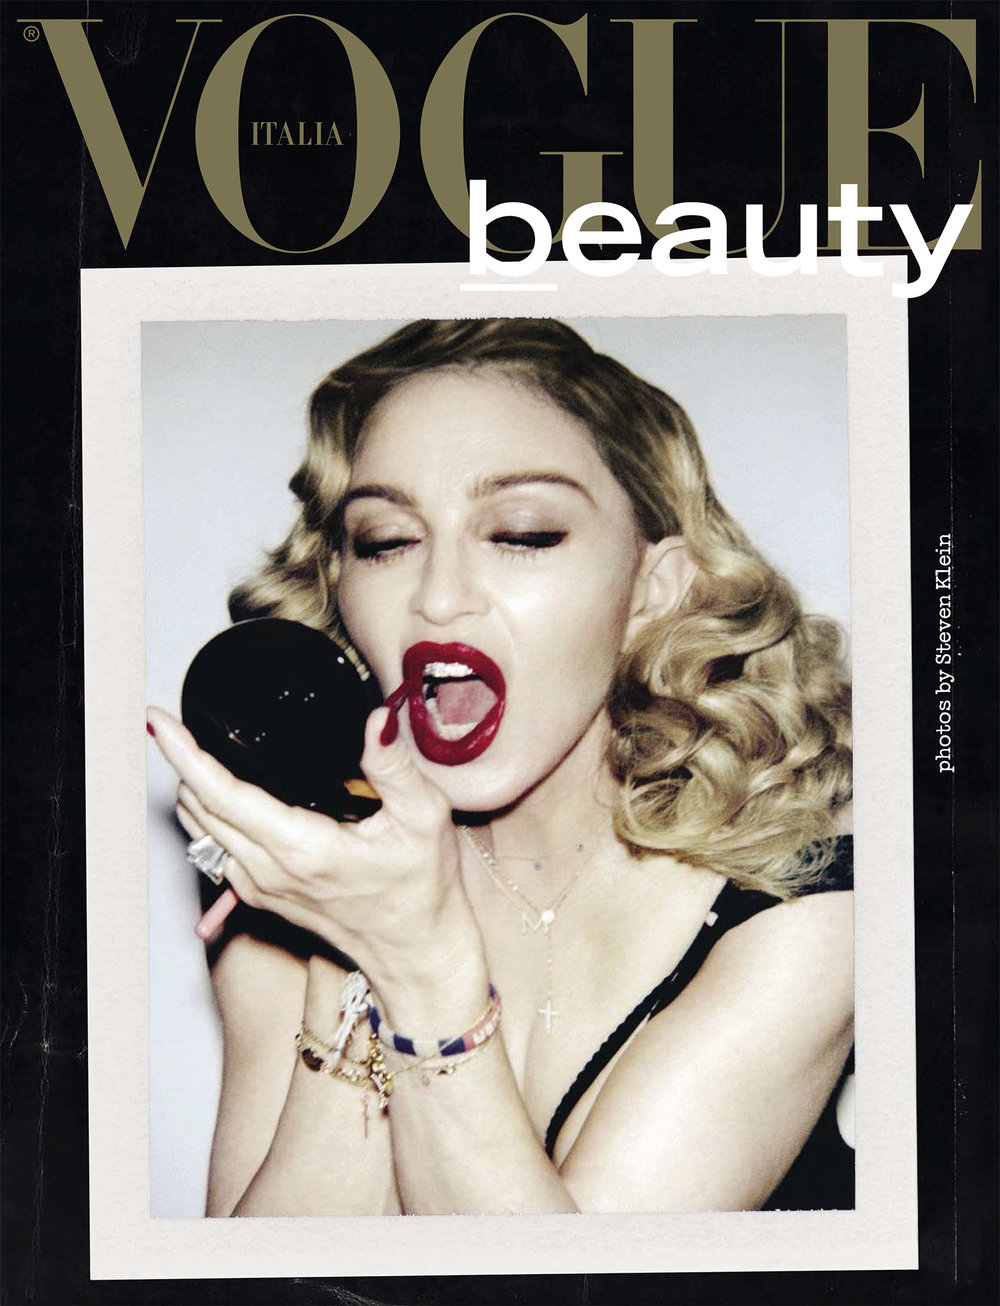 20170215-pictures-madonna-cover-vogue-italia-scans-01.jpg